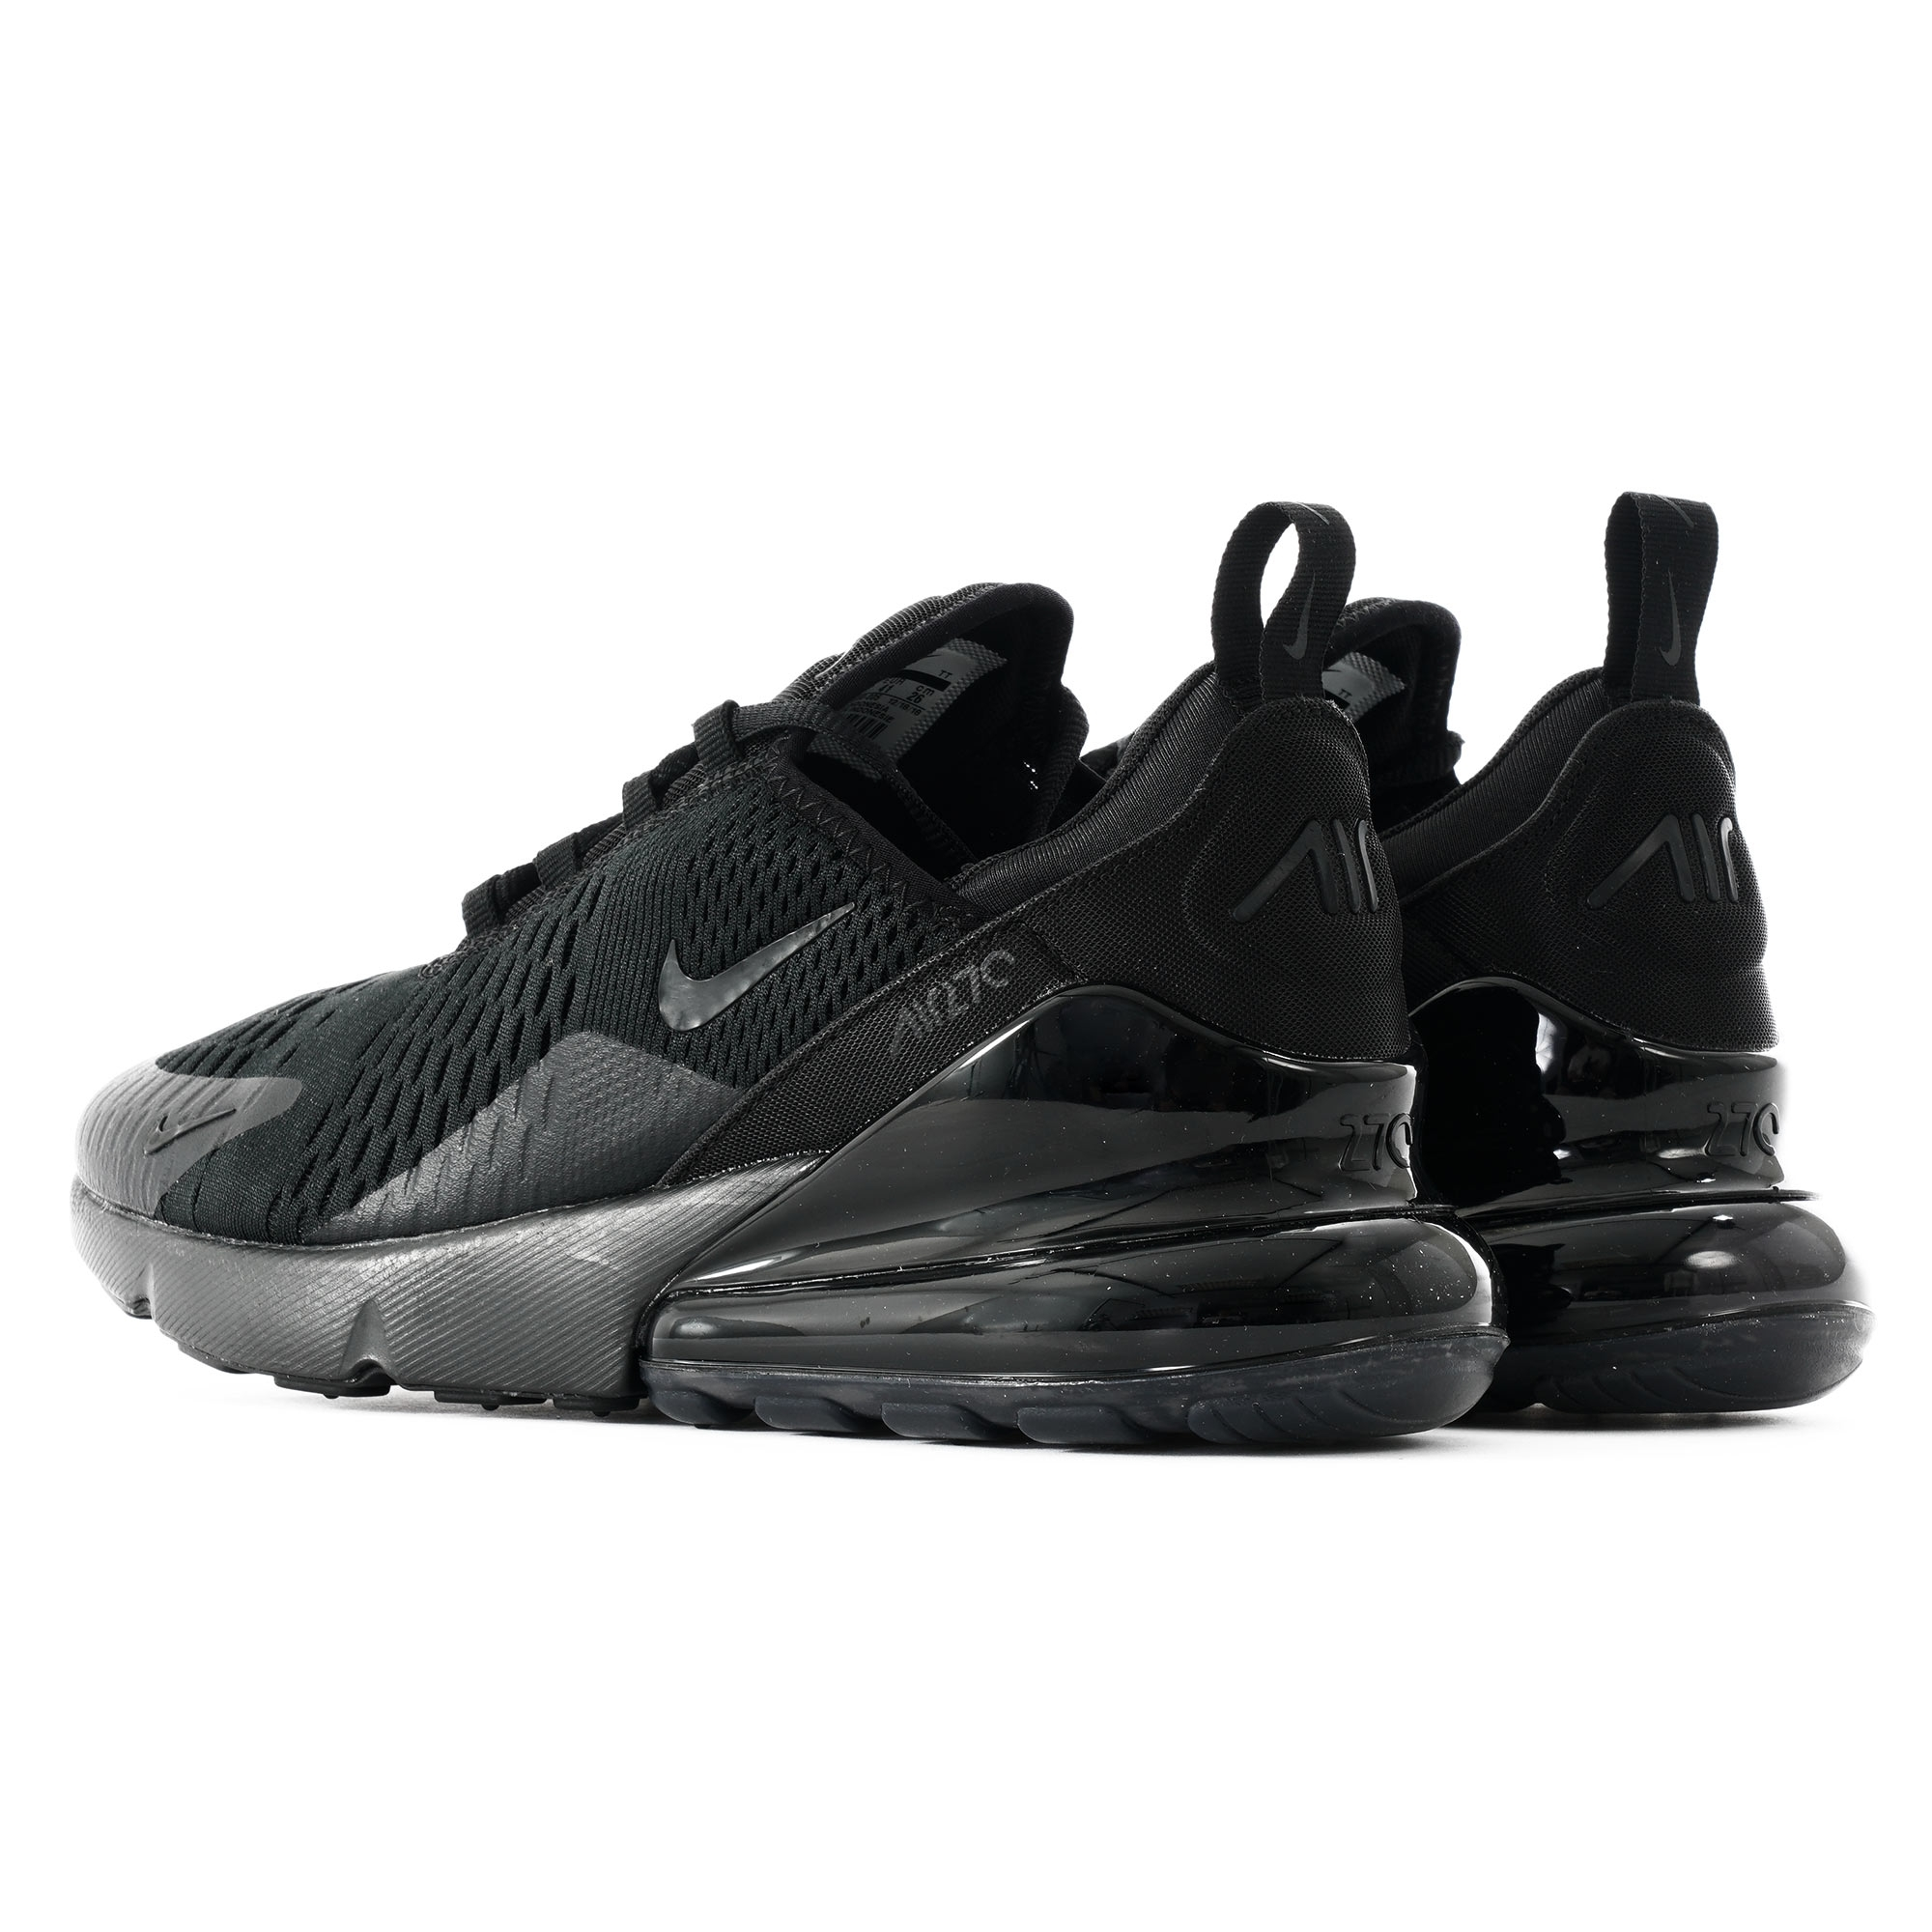 detailed look 8fabc f92ca Air Max 270 - Black